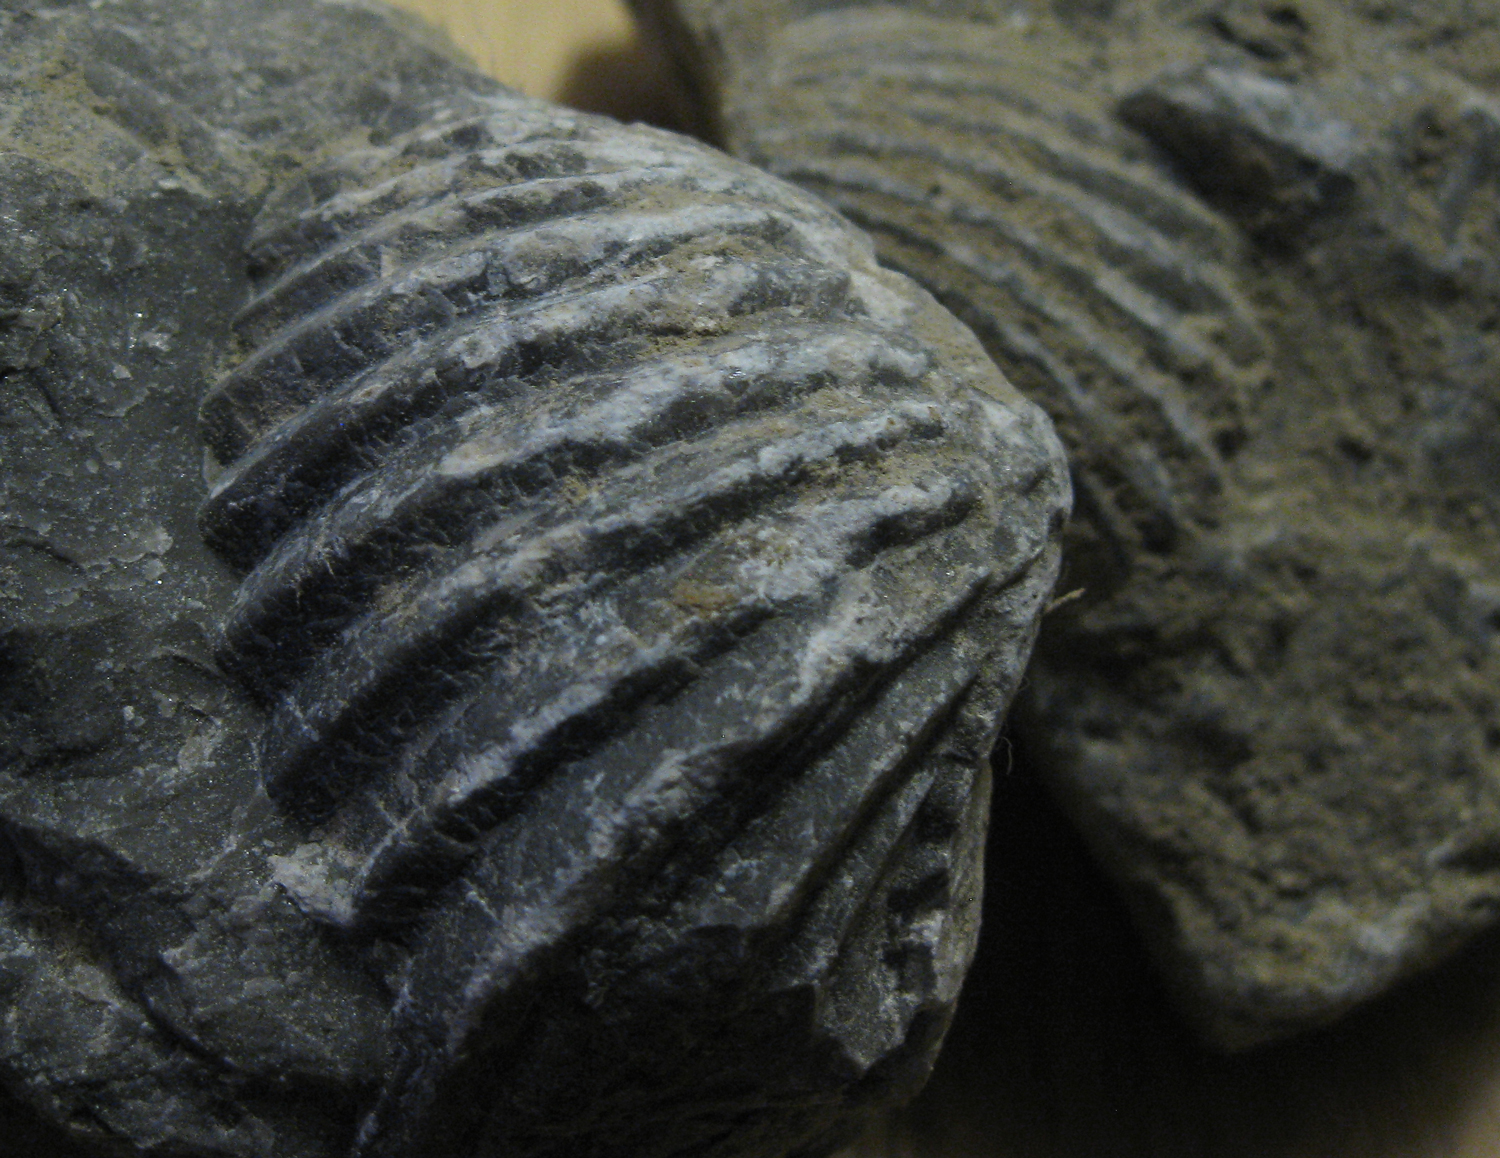 Brachiopod fossils look similar to cockle shells, but were a different creature.